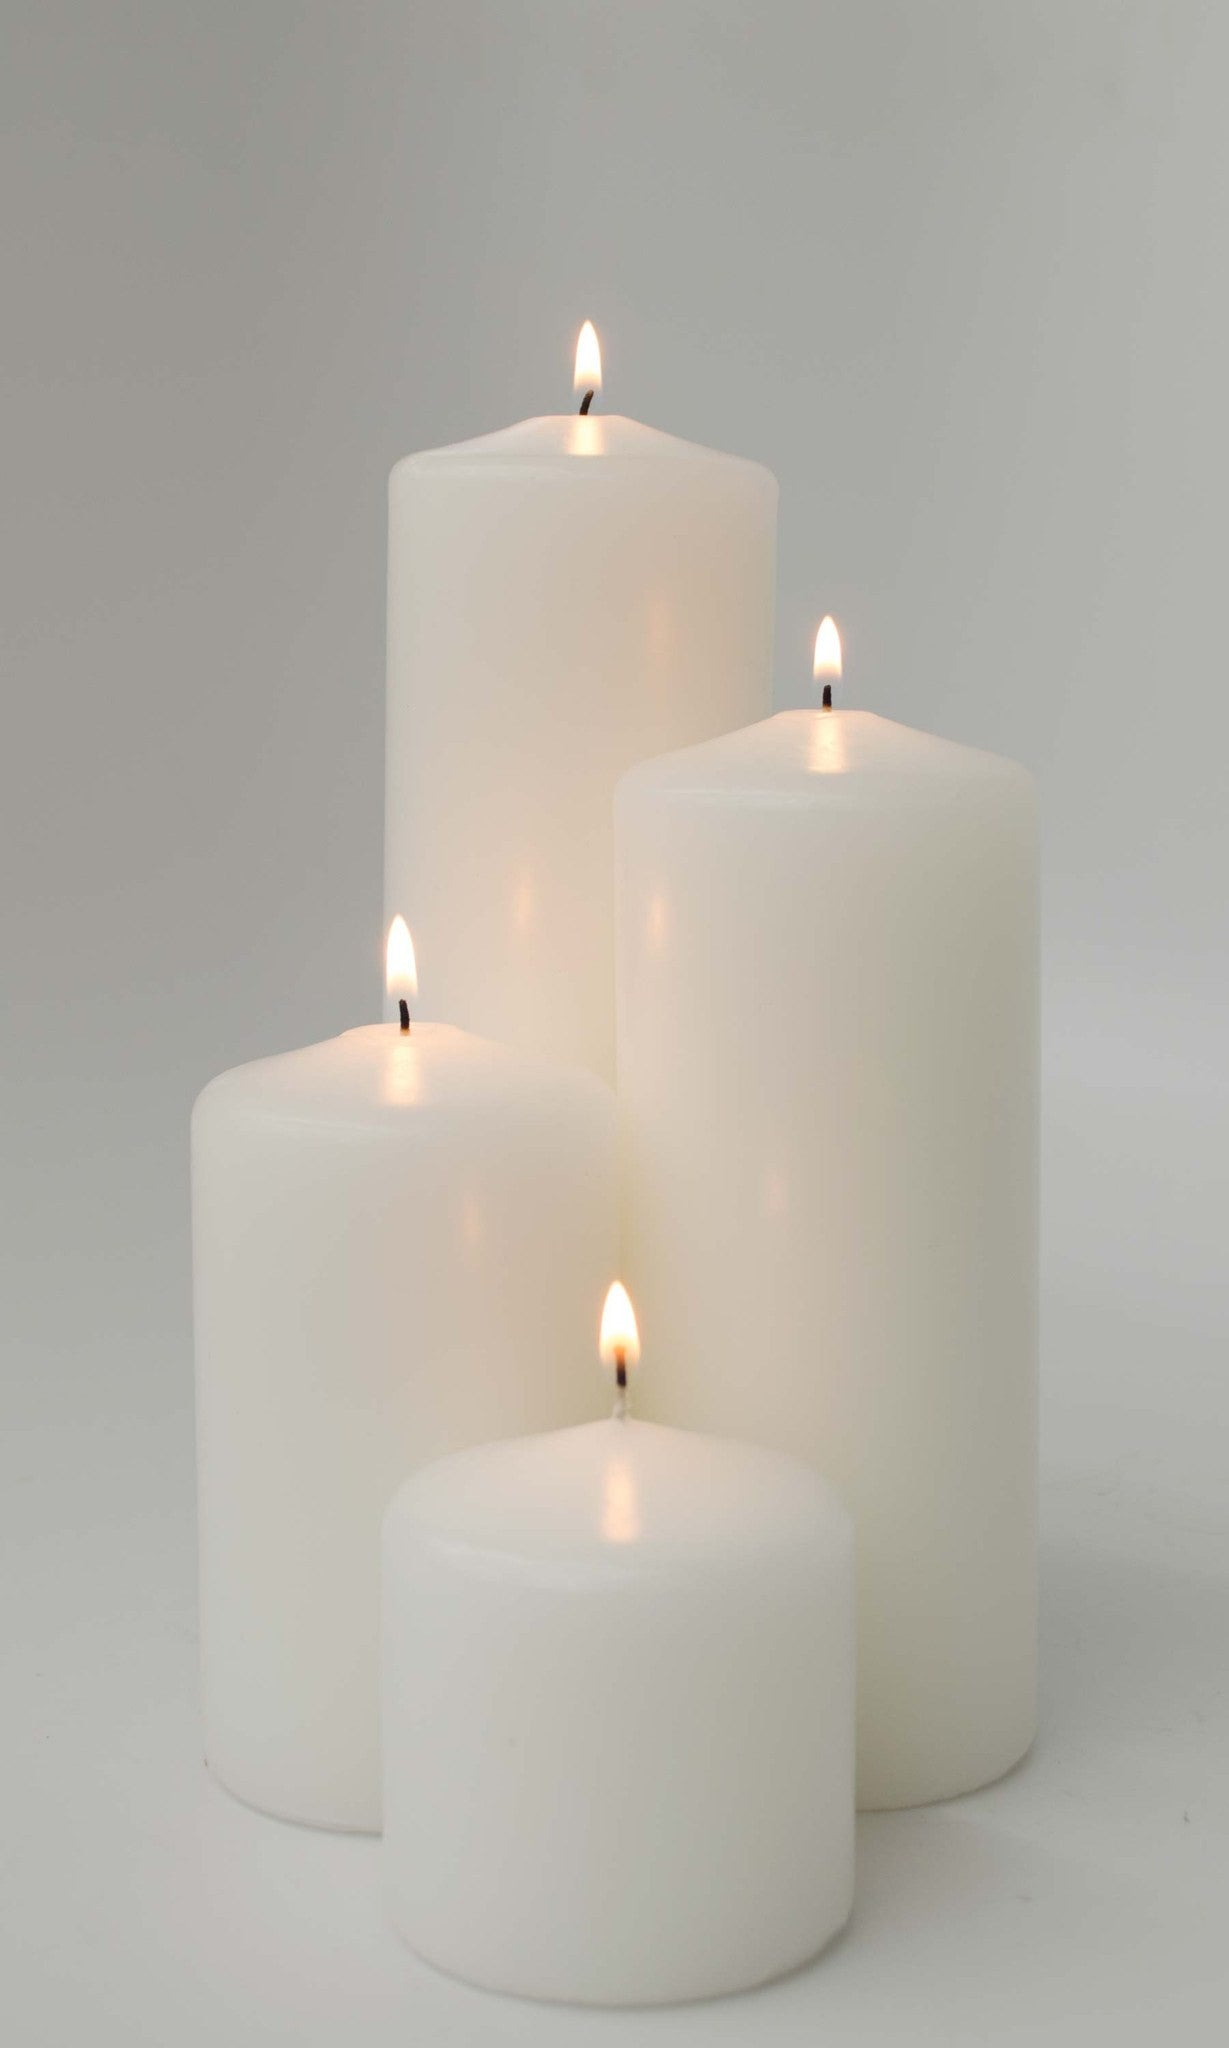 3x9 Unscented White Pillar Candle - Candlemart.com - 2